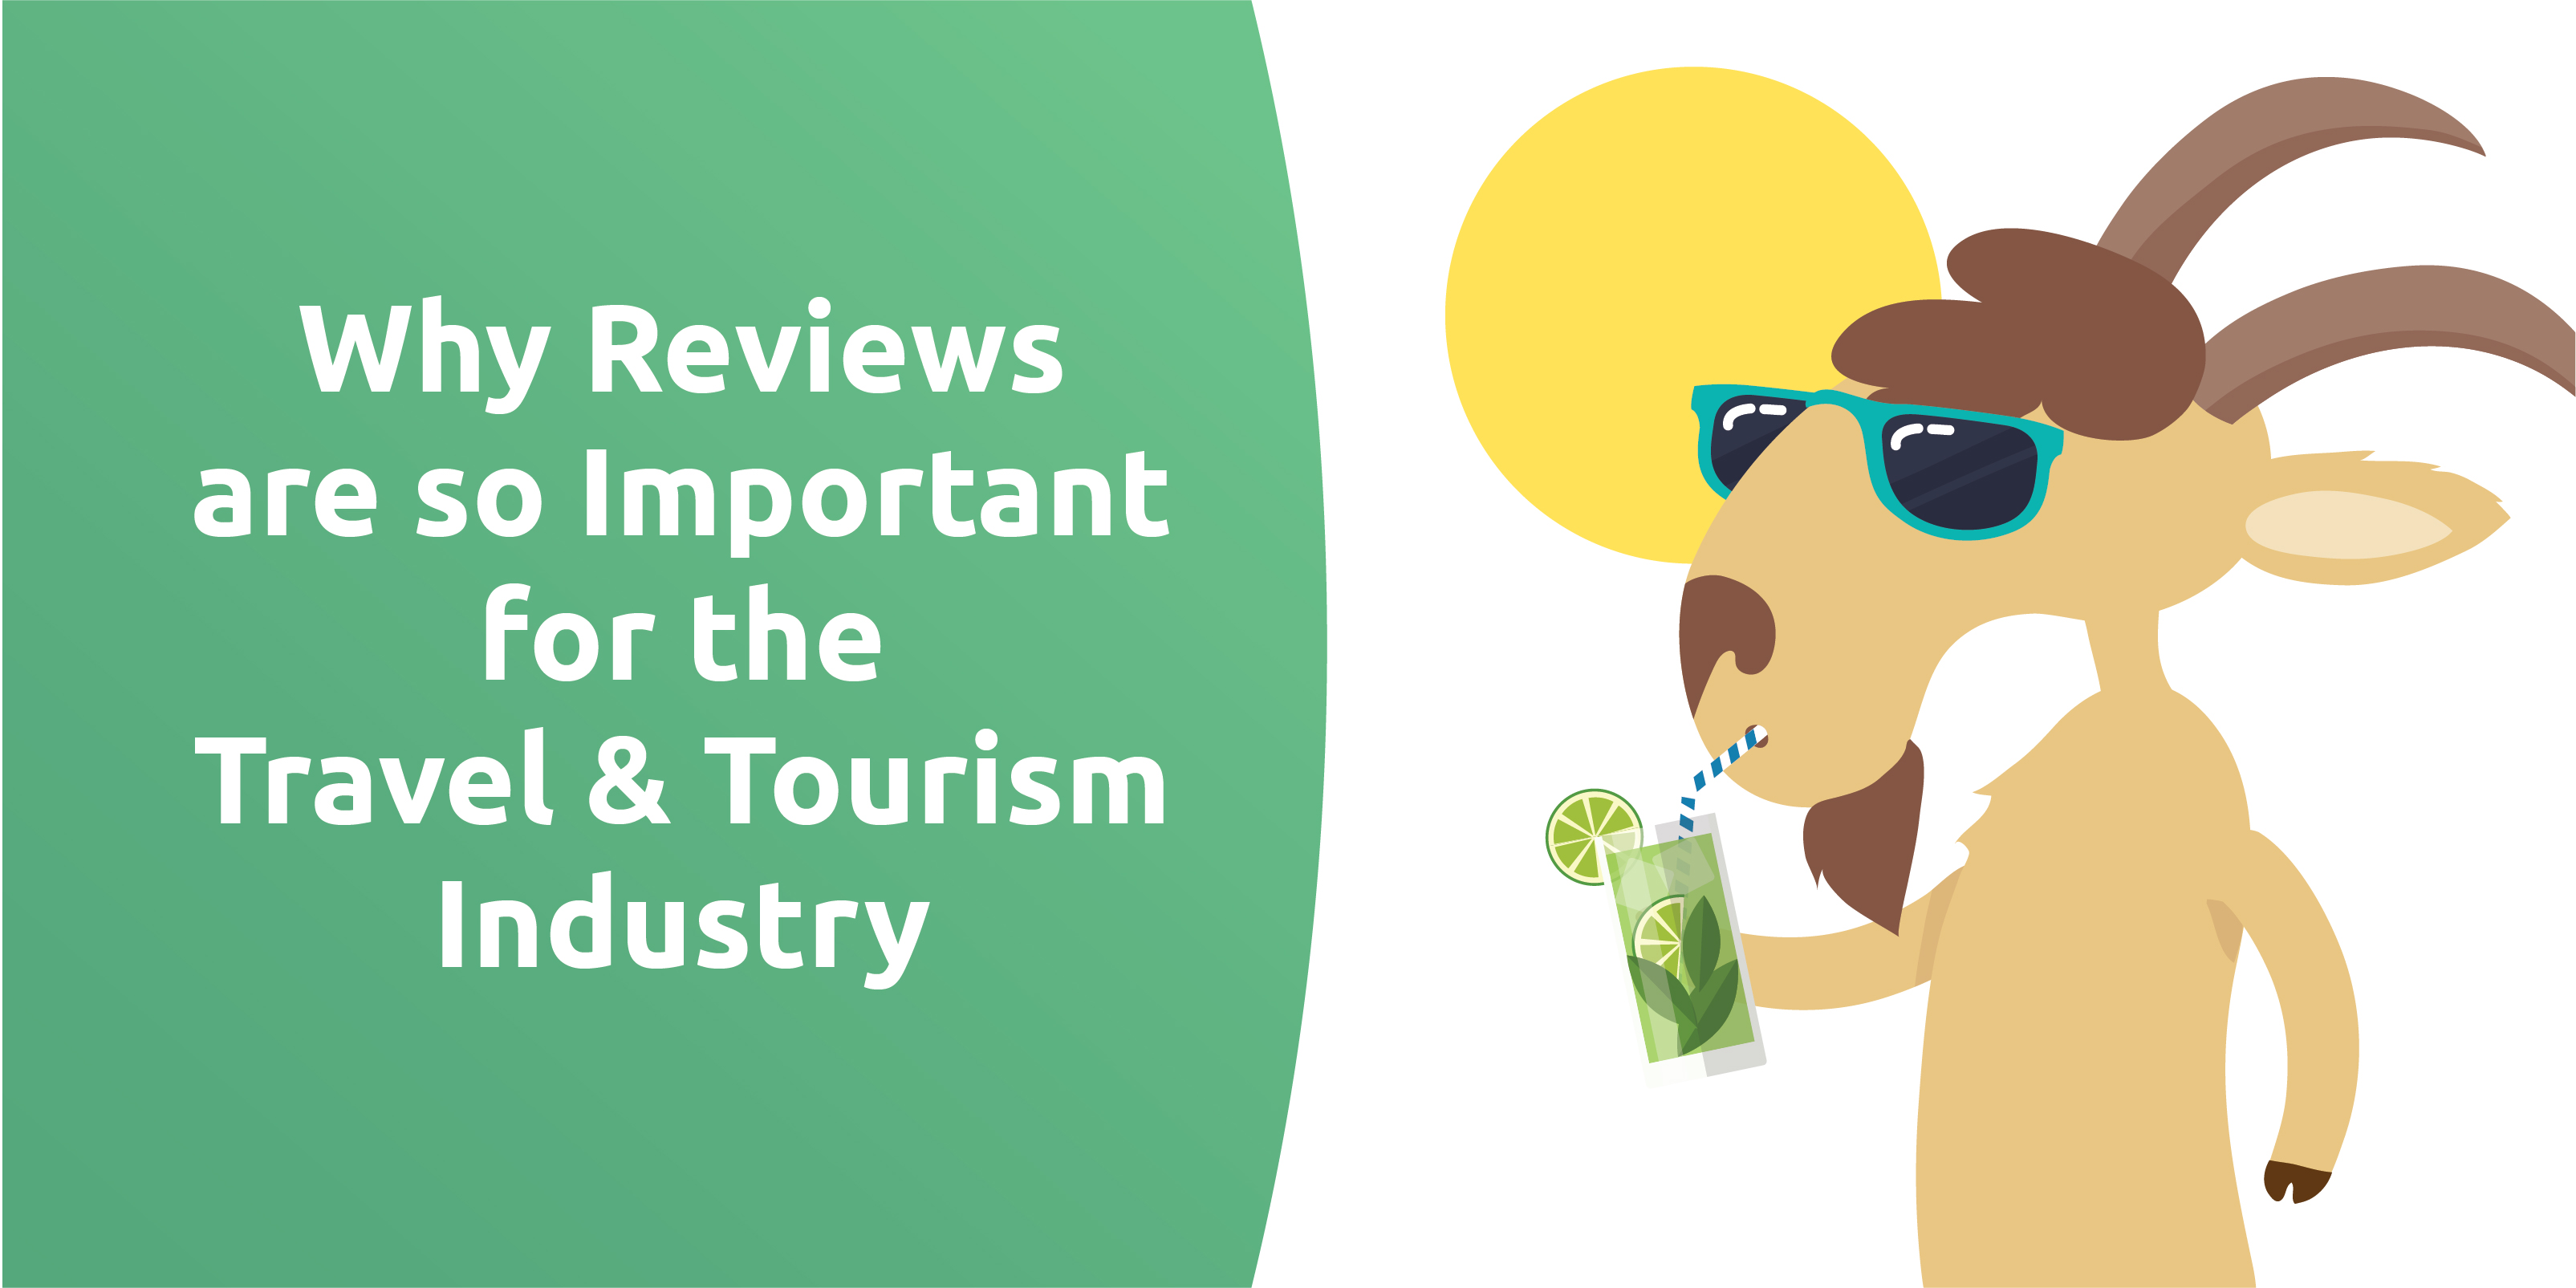 Why reviews are so important for the travel & tourism industry